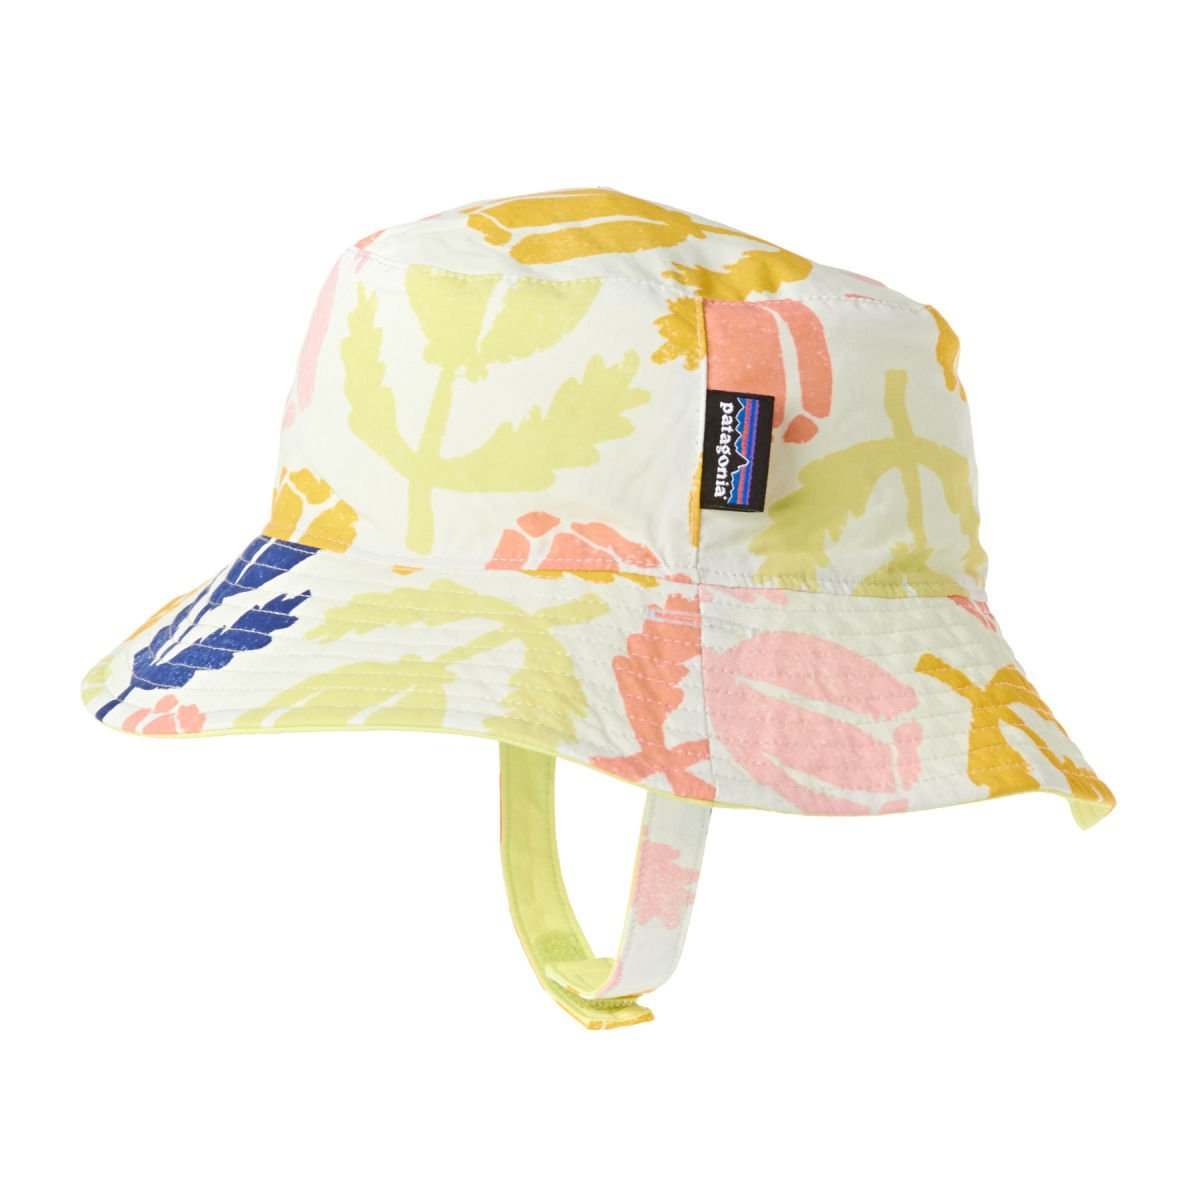 c69c864cb14 Amazon.com  Patagonia Girls  Baby Sun Bucket Hat (Infant Toddler)  Clothing